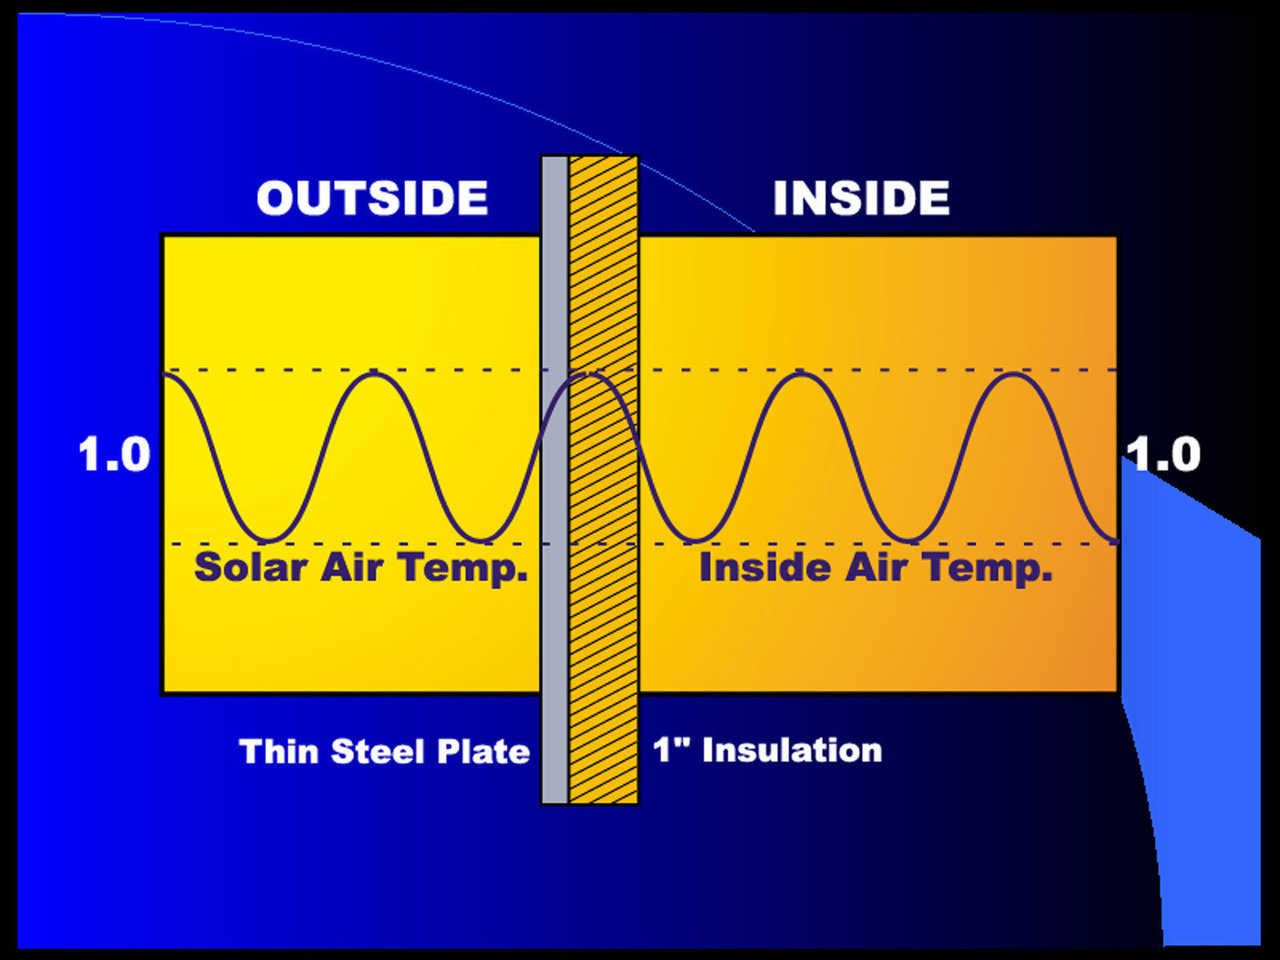 No Difference — This illustrates that a metal building, with one inch of insulation on the inside, shows almost no difference between air temperatures inside and outside.